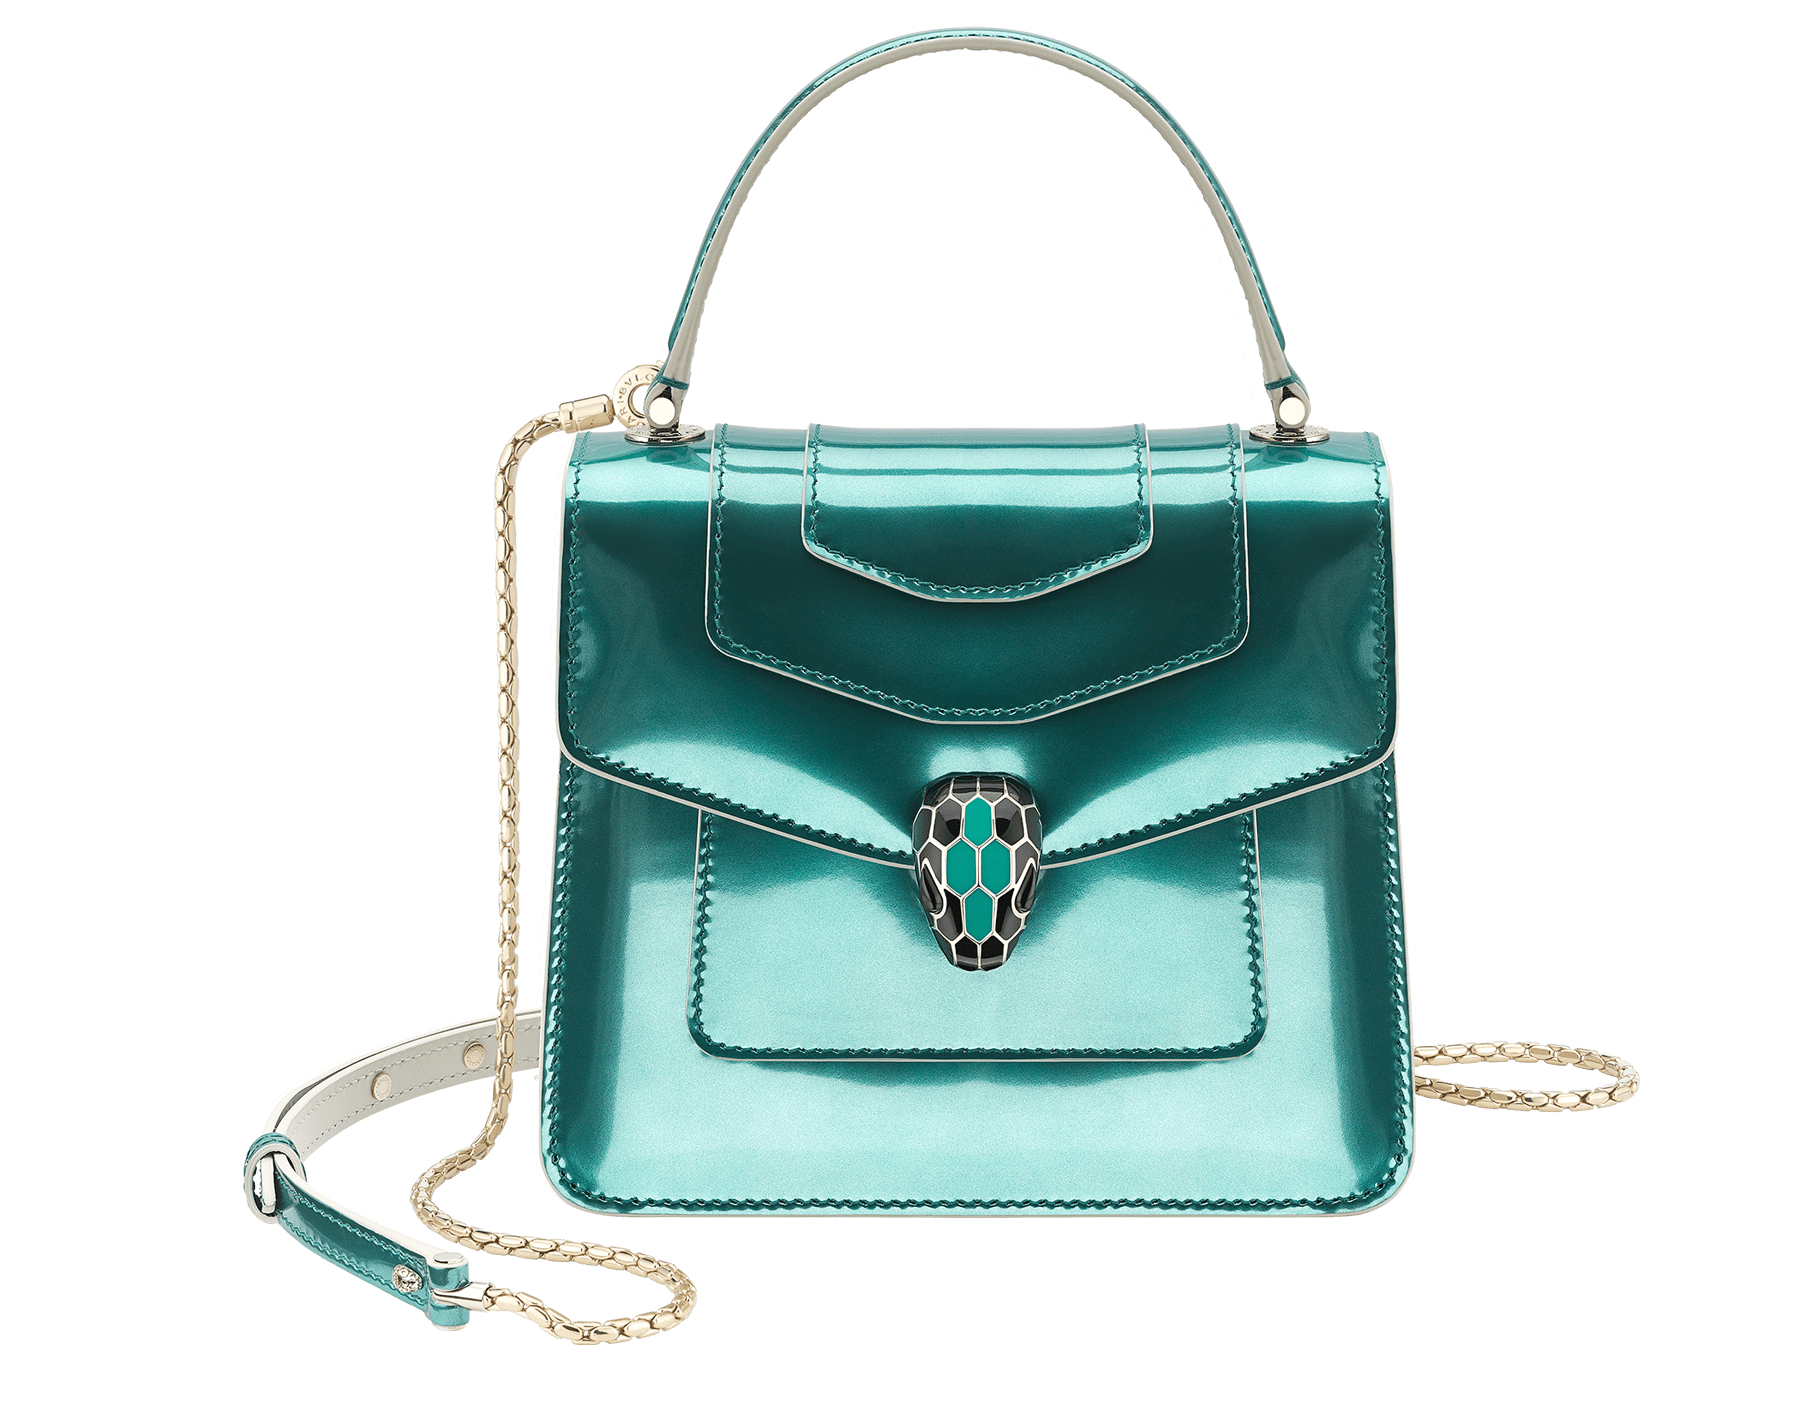 """Serpenti Forever "" crossbody bag in brushed metallic arctic jade calf leather body and brushed metallic arctic jade calf leather and white agate calf leather sides. Iconic snakehead closure in light gold plated brass enriched with black and arctic jade enamel and black onyx eyes. 289485 image 1"